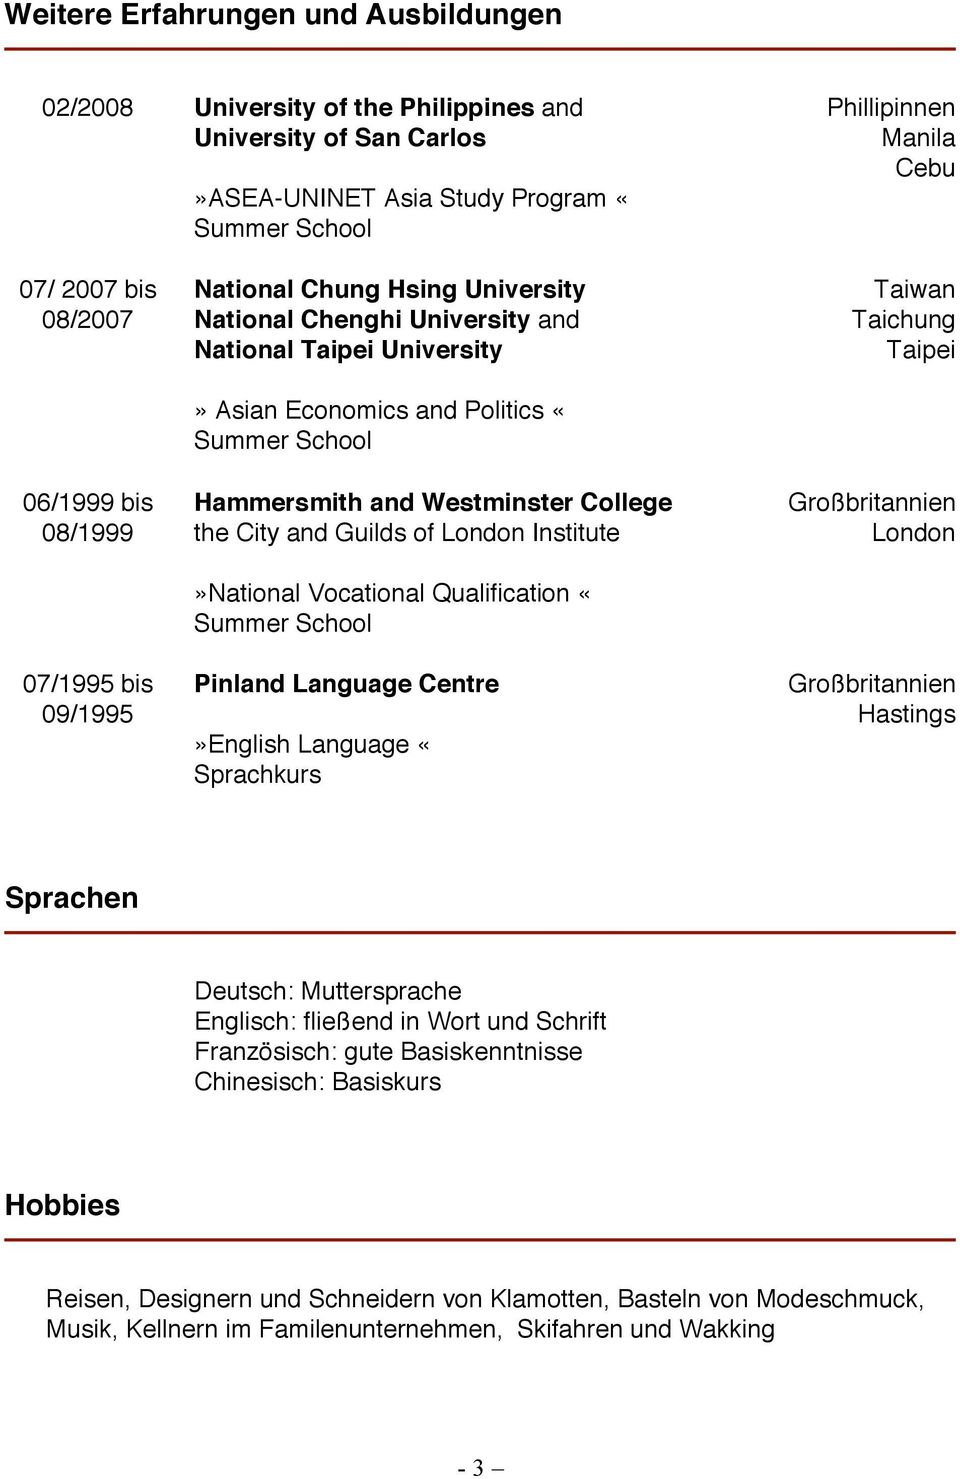 Westminster College the City and Guilds of London Institute»National Vocational Qualification «Summer School Pinland Language Centre»English Language «Sprachkurs Taiwan Taichung Taipei London